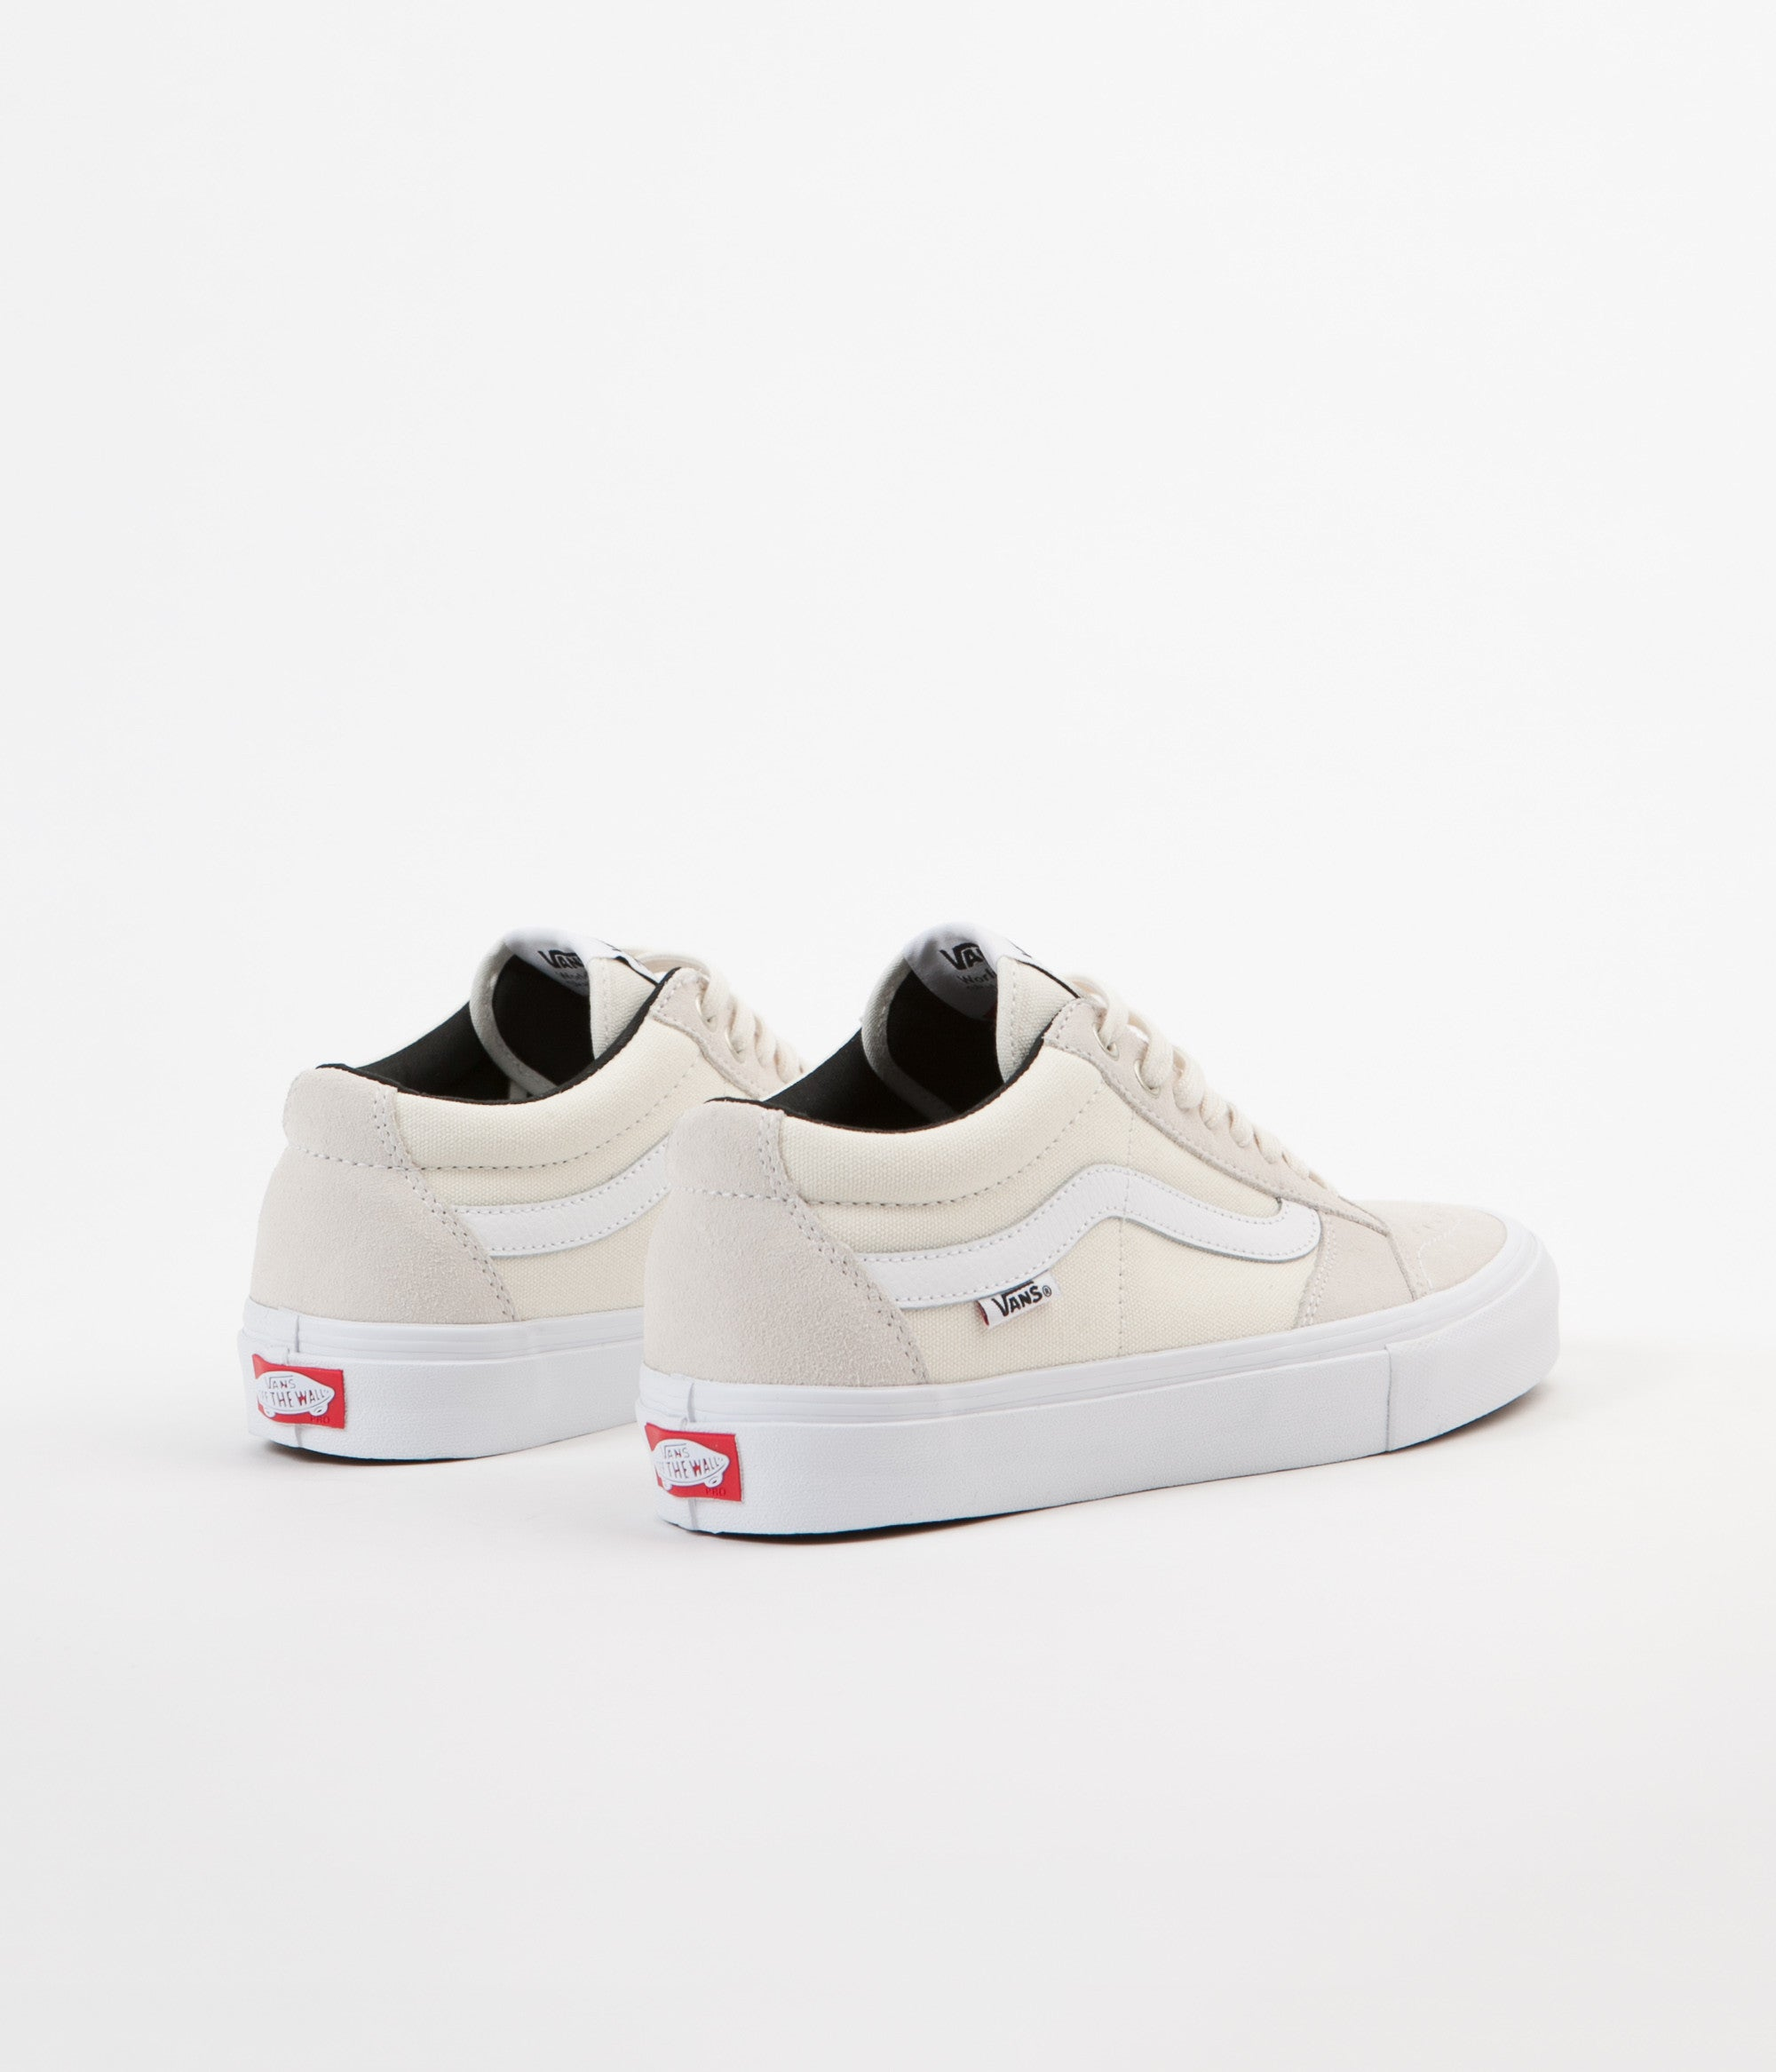 fce303d685e7 ... Vans TNT SG Shoes - White   White ...